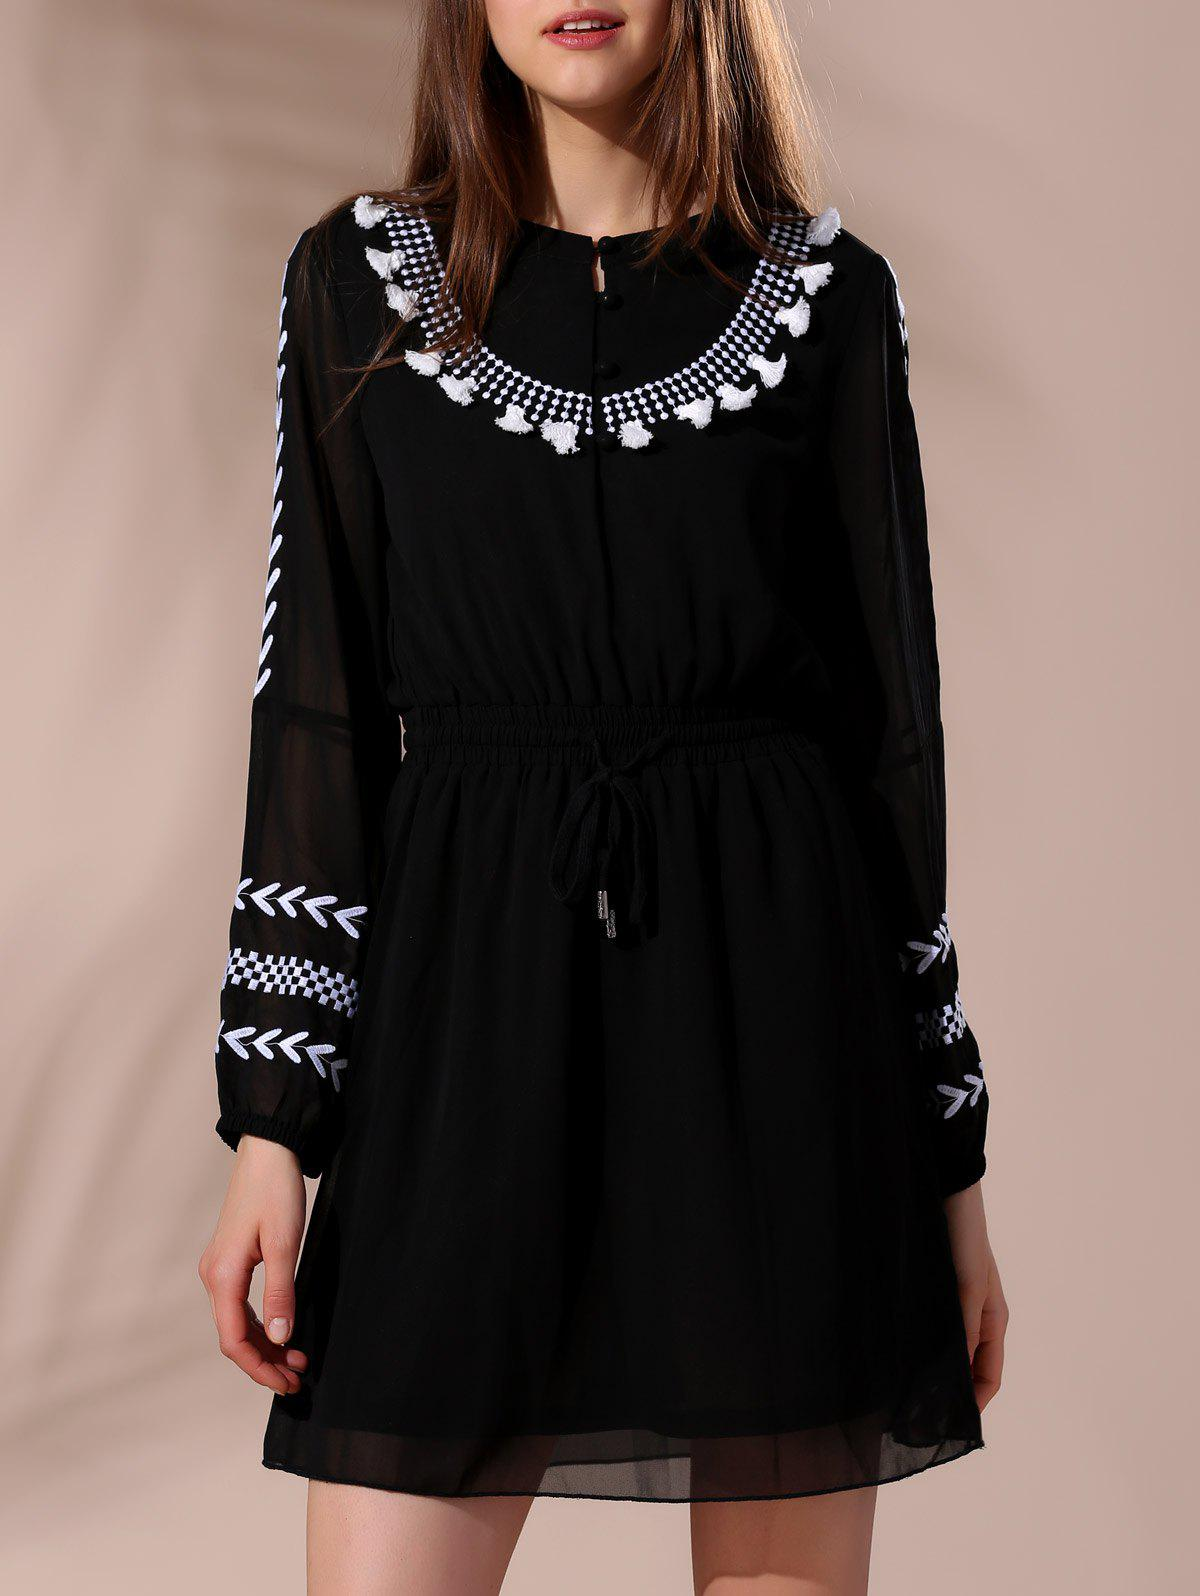 Ethnic Women's Round Neck Embroidered Long Sleeve Drawstring Dress